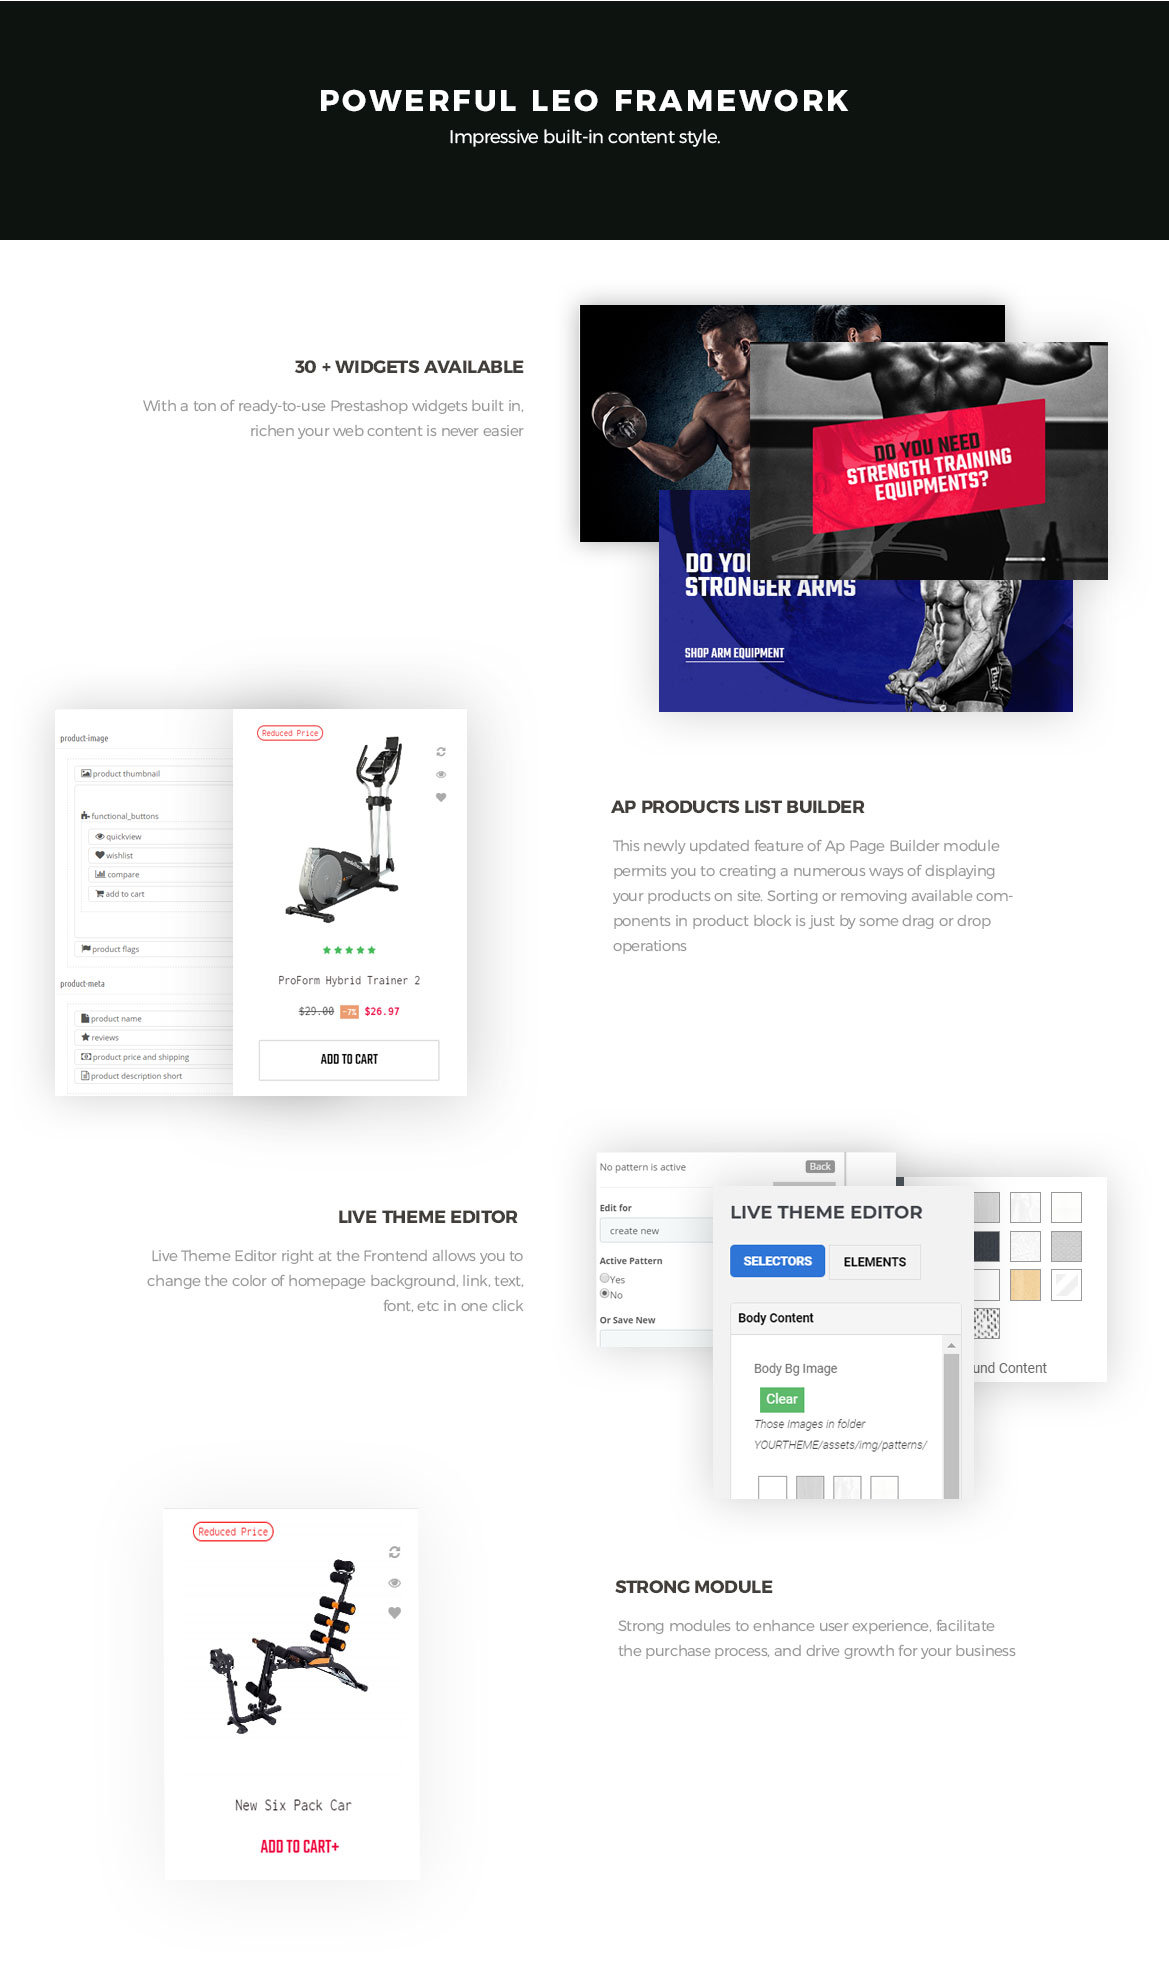 powerful-leo-framework-bos-gymgear-gym-prestashop-theme